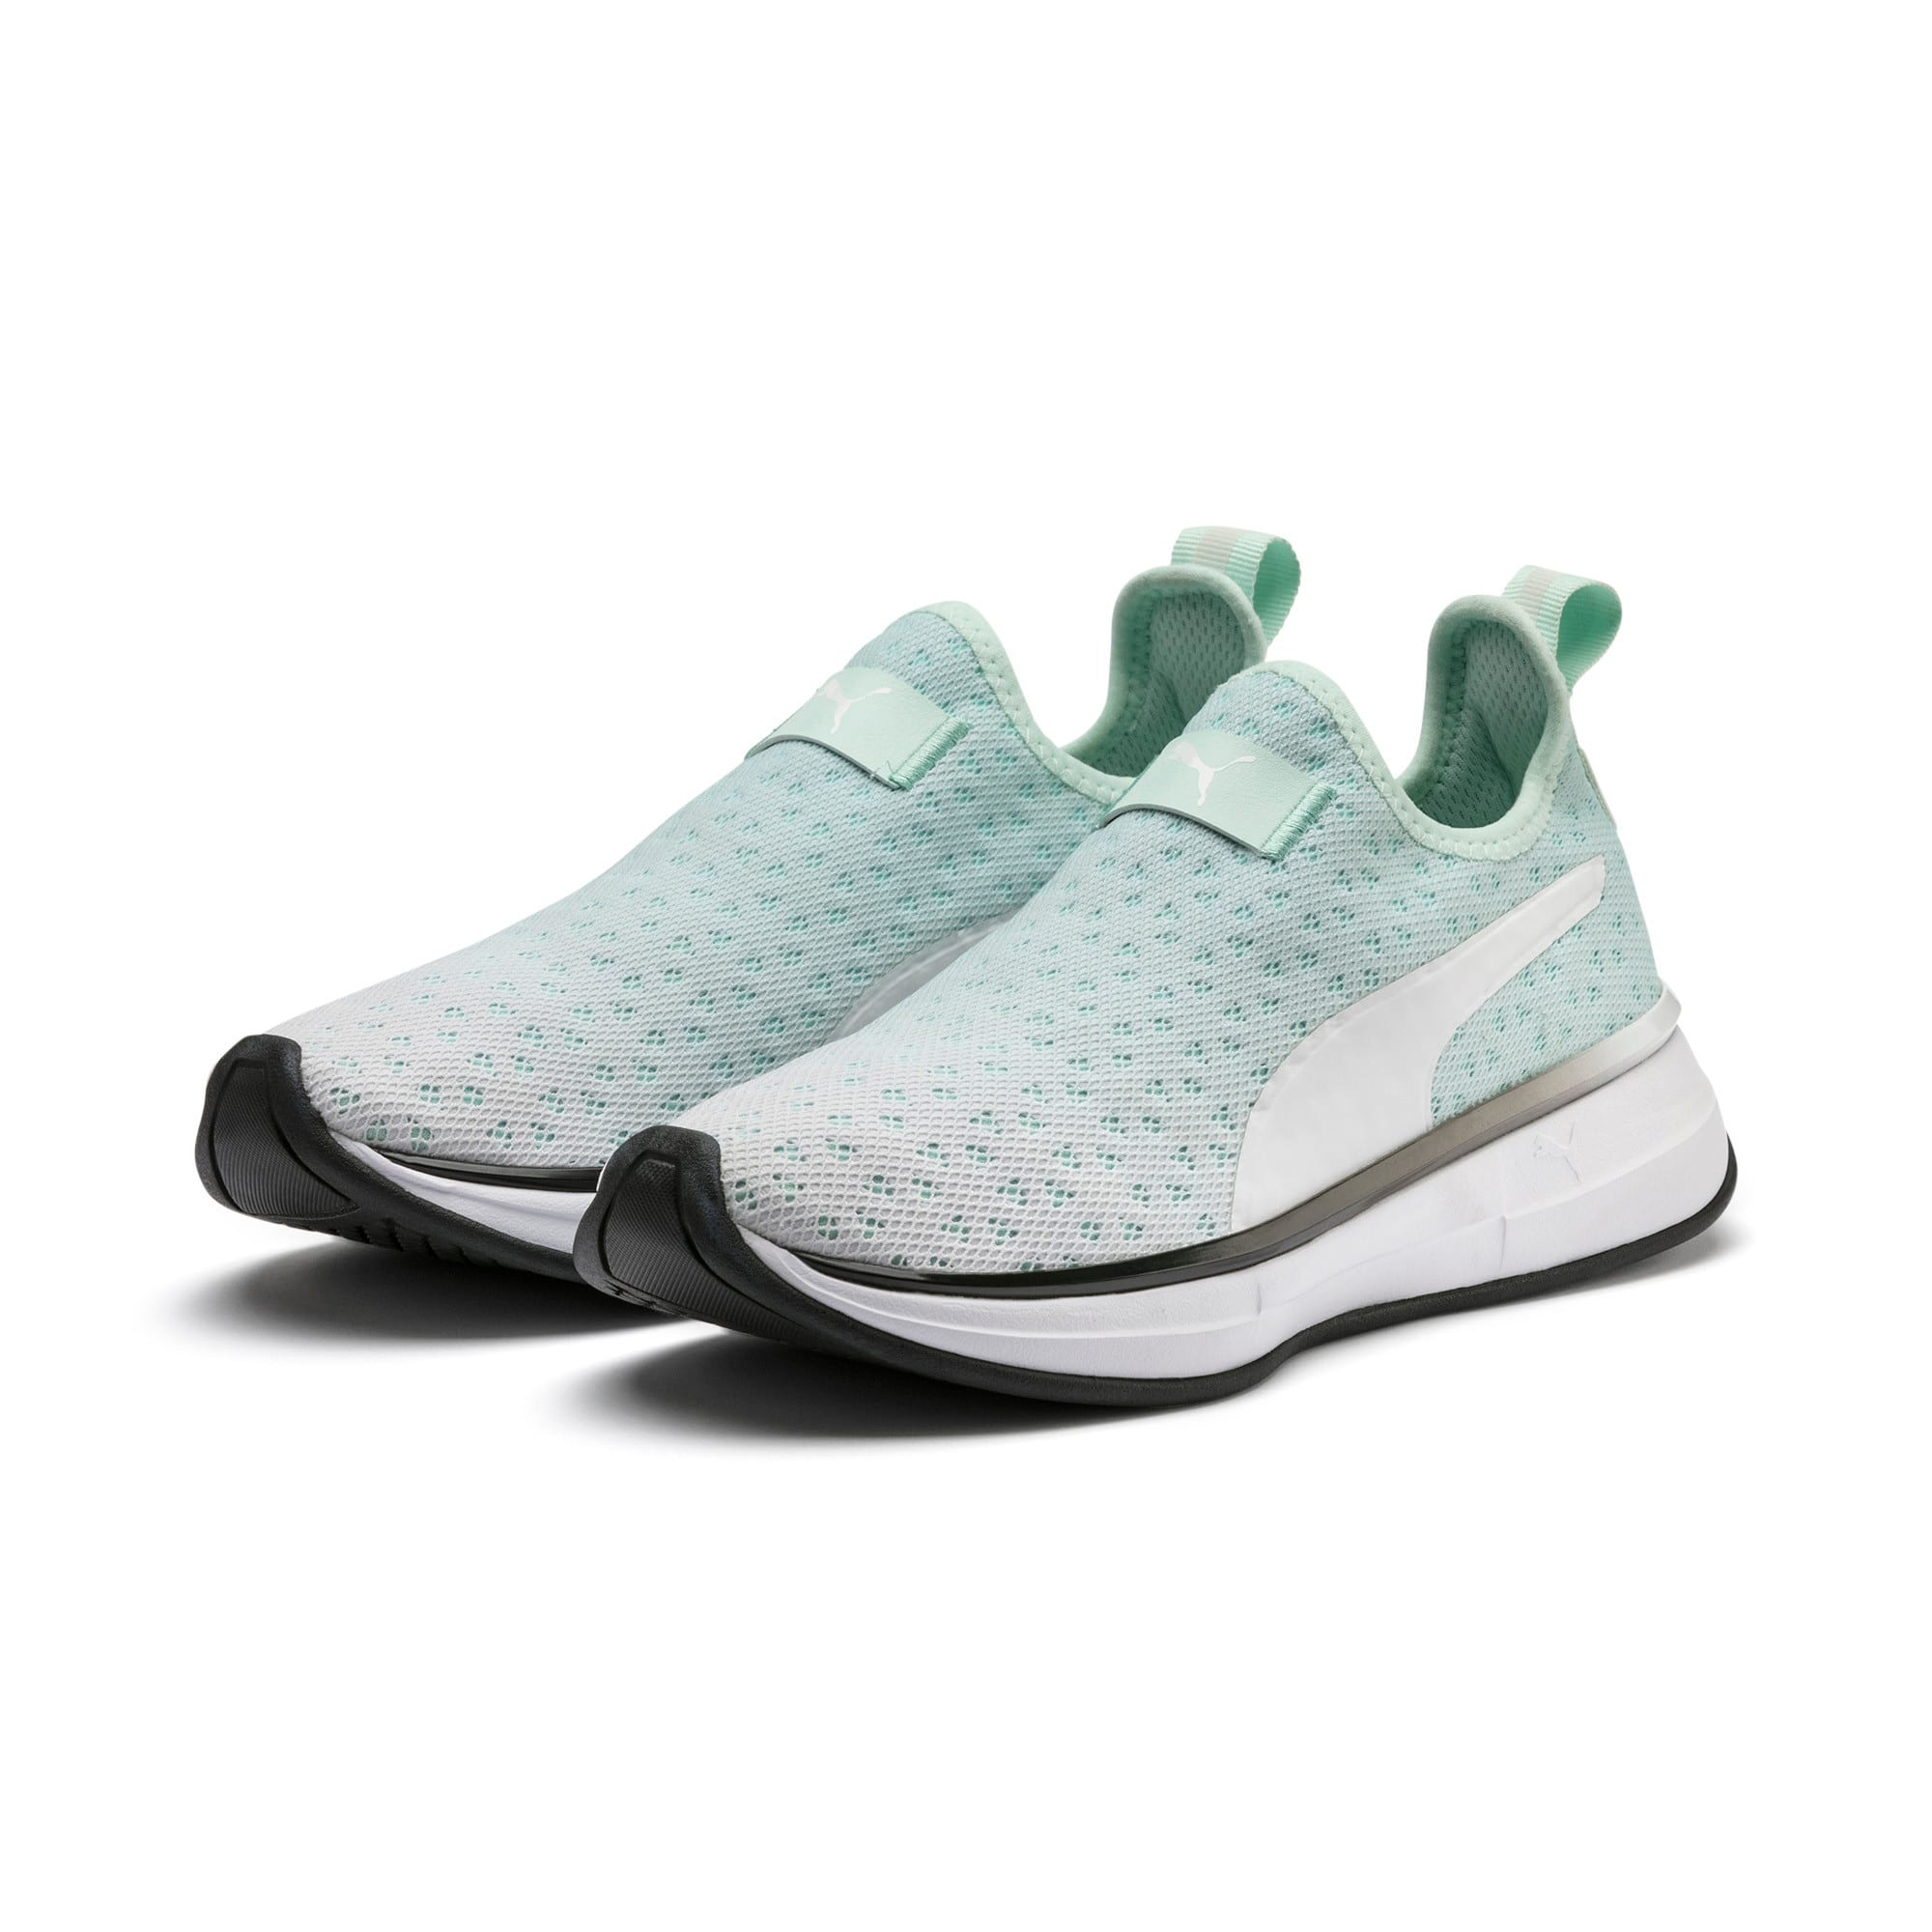 Thumbnail 3 of SG Slip-on Bright Fade Women's Training Shoes, Fair Aqua-Puma Black, medium